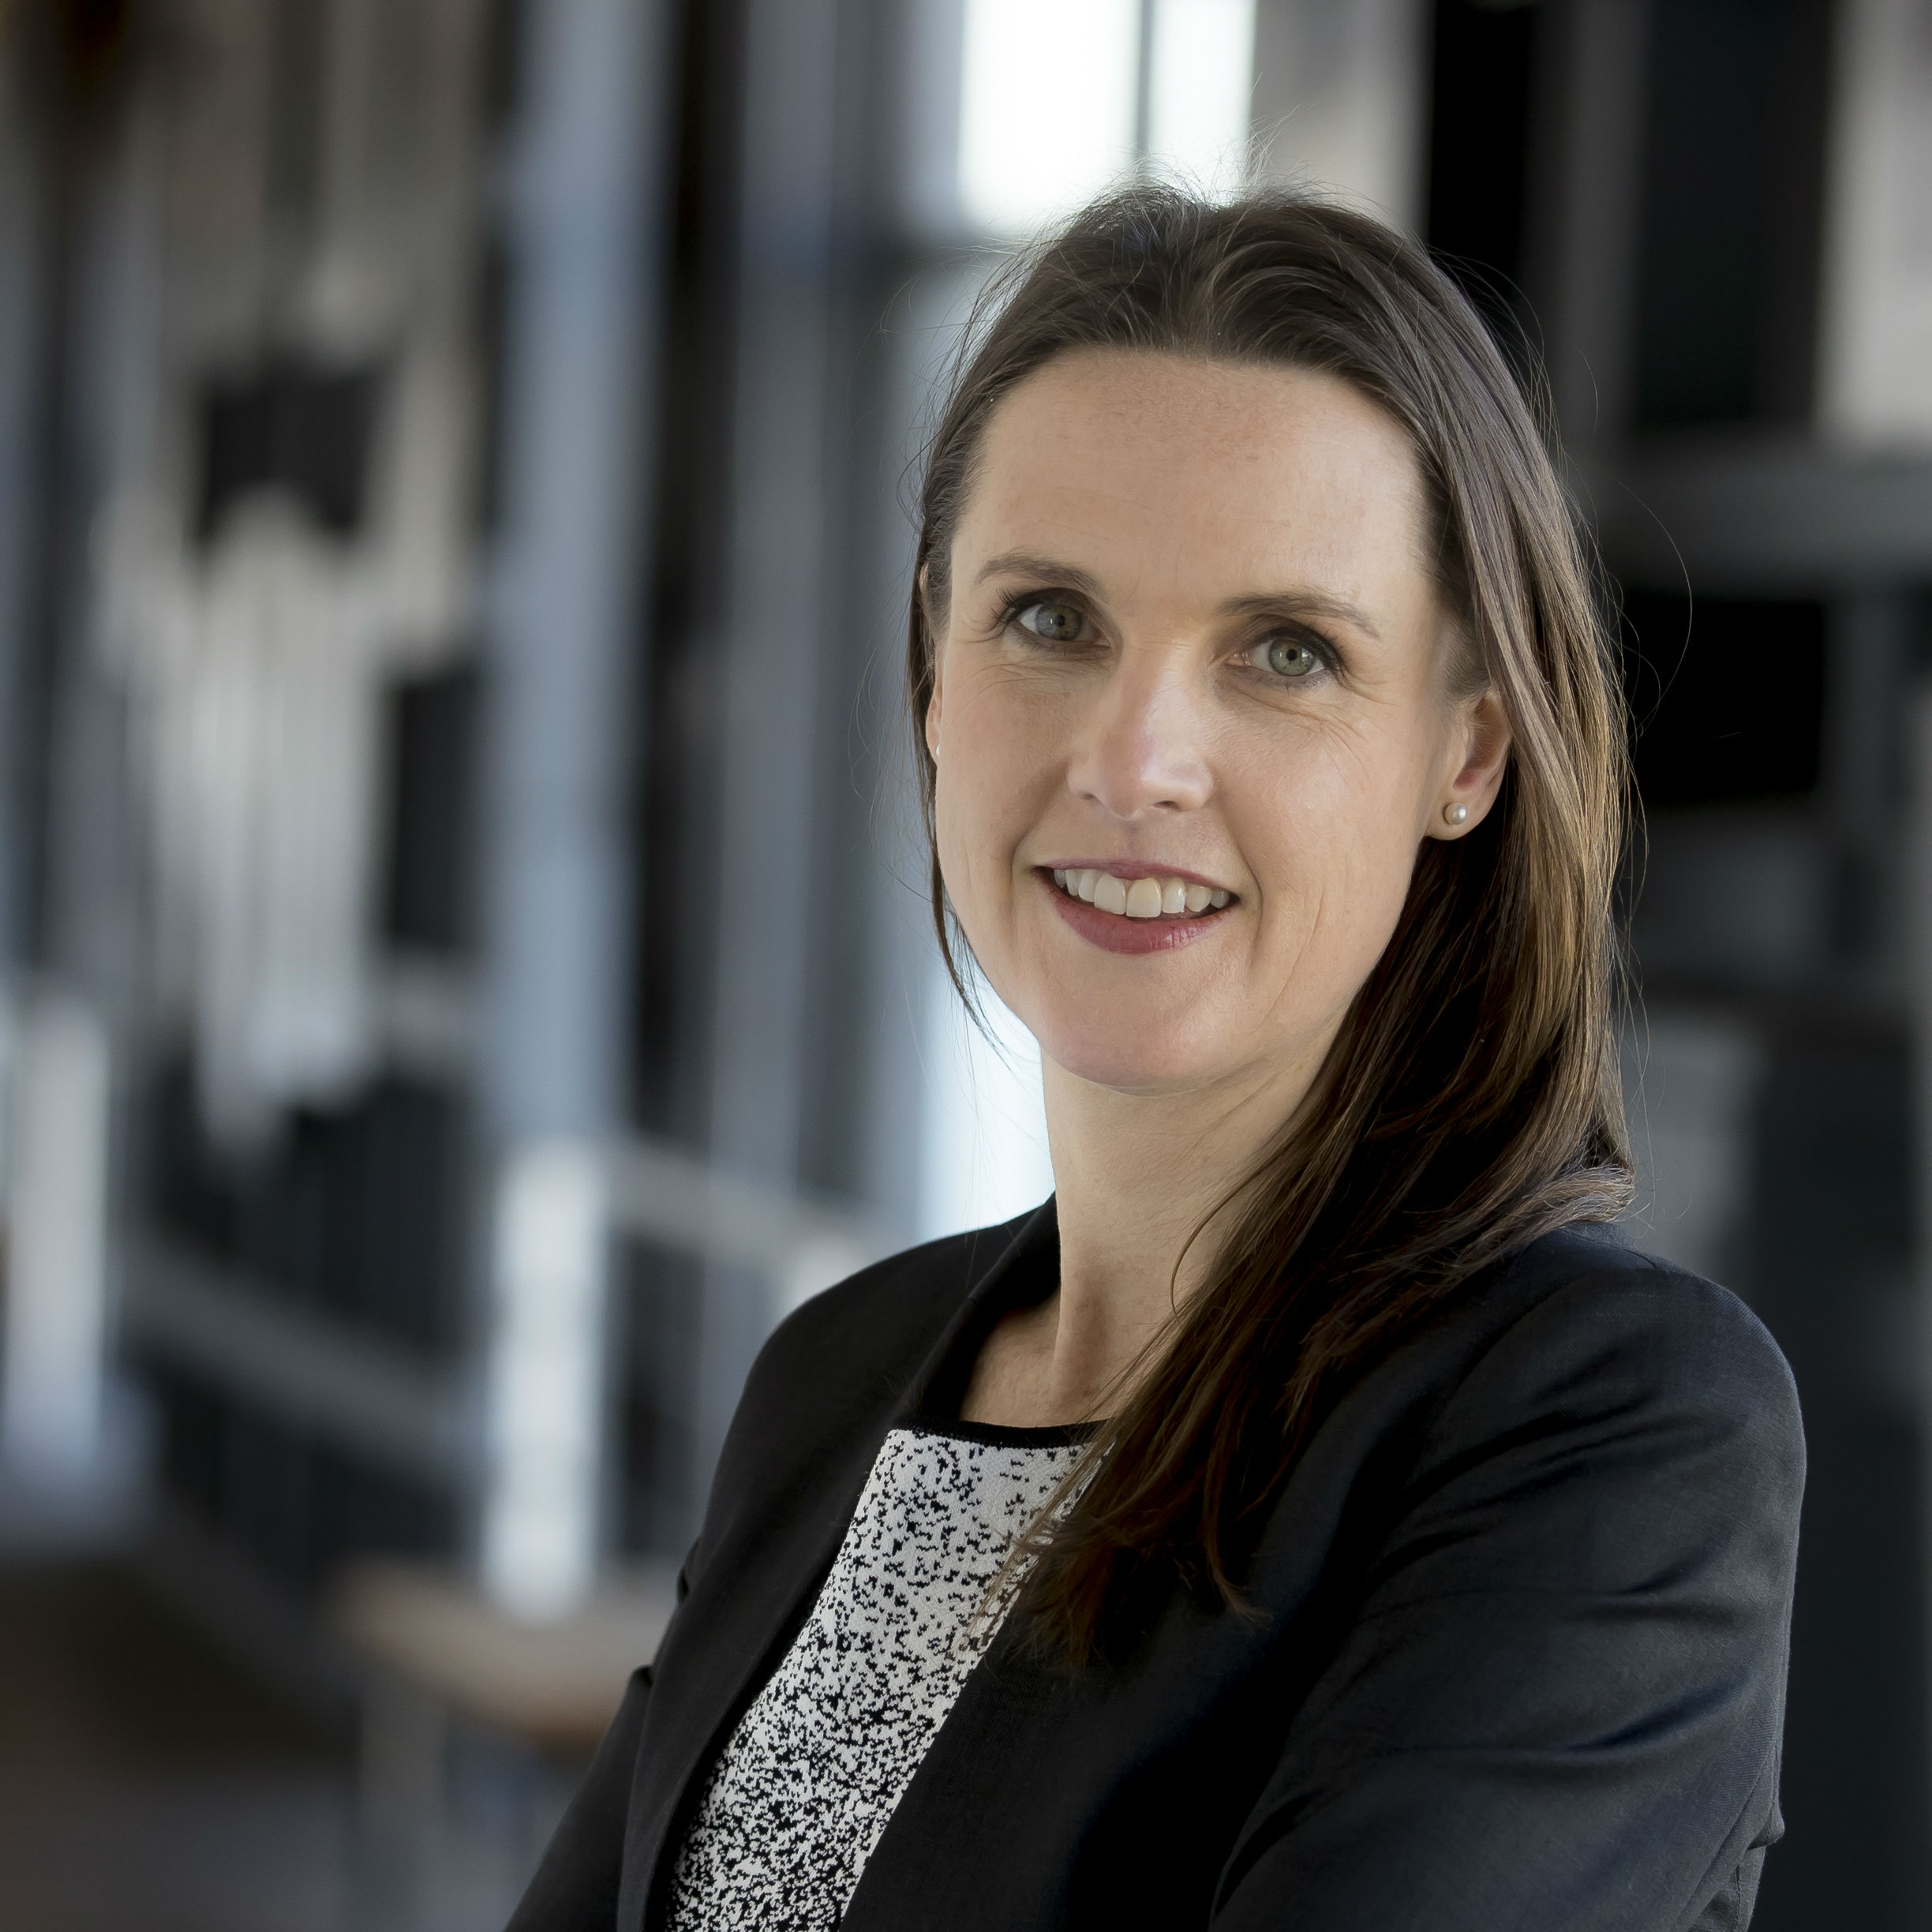 nicole connolly access unlisted infra opportunity